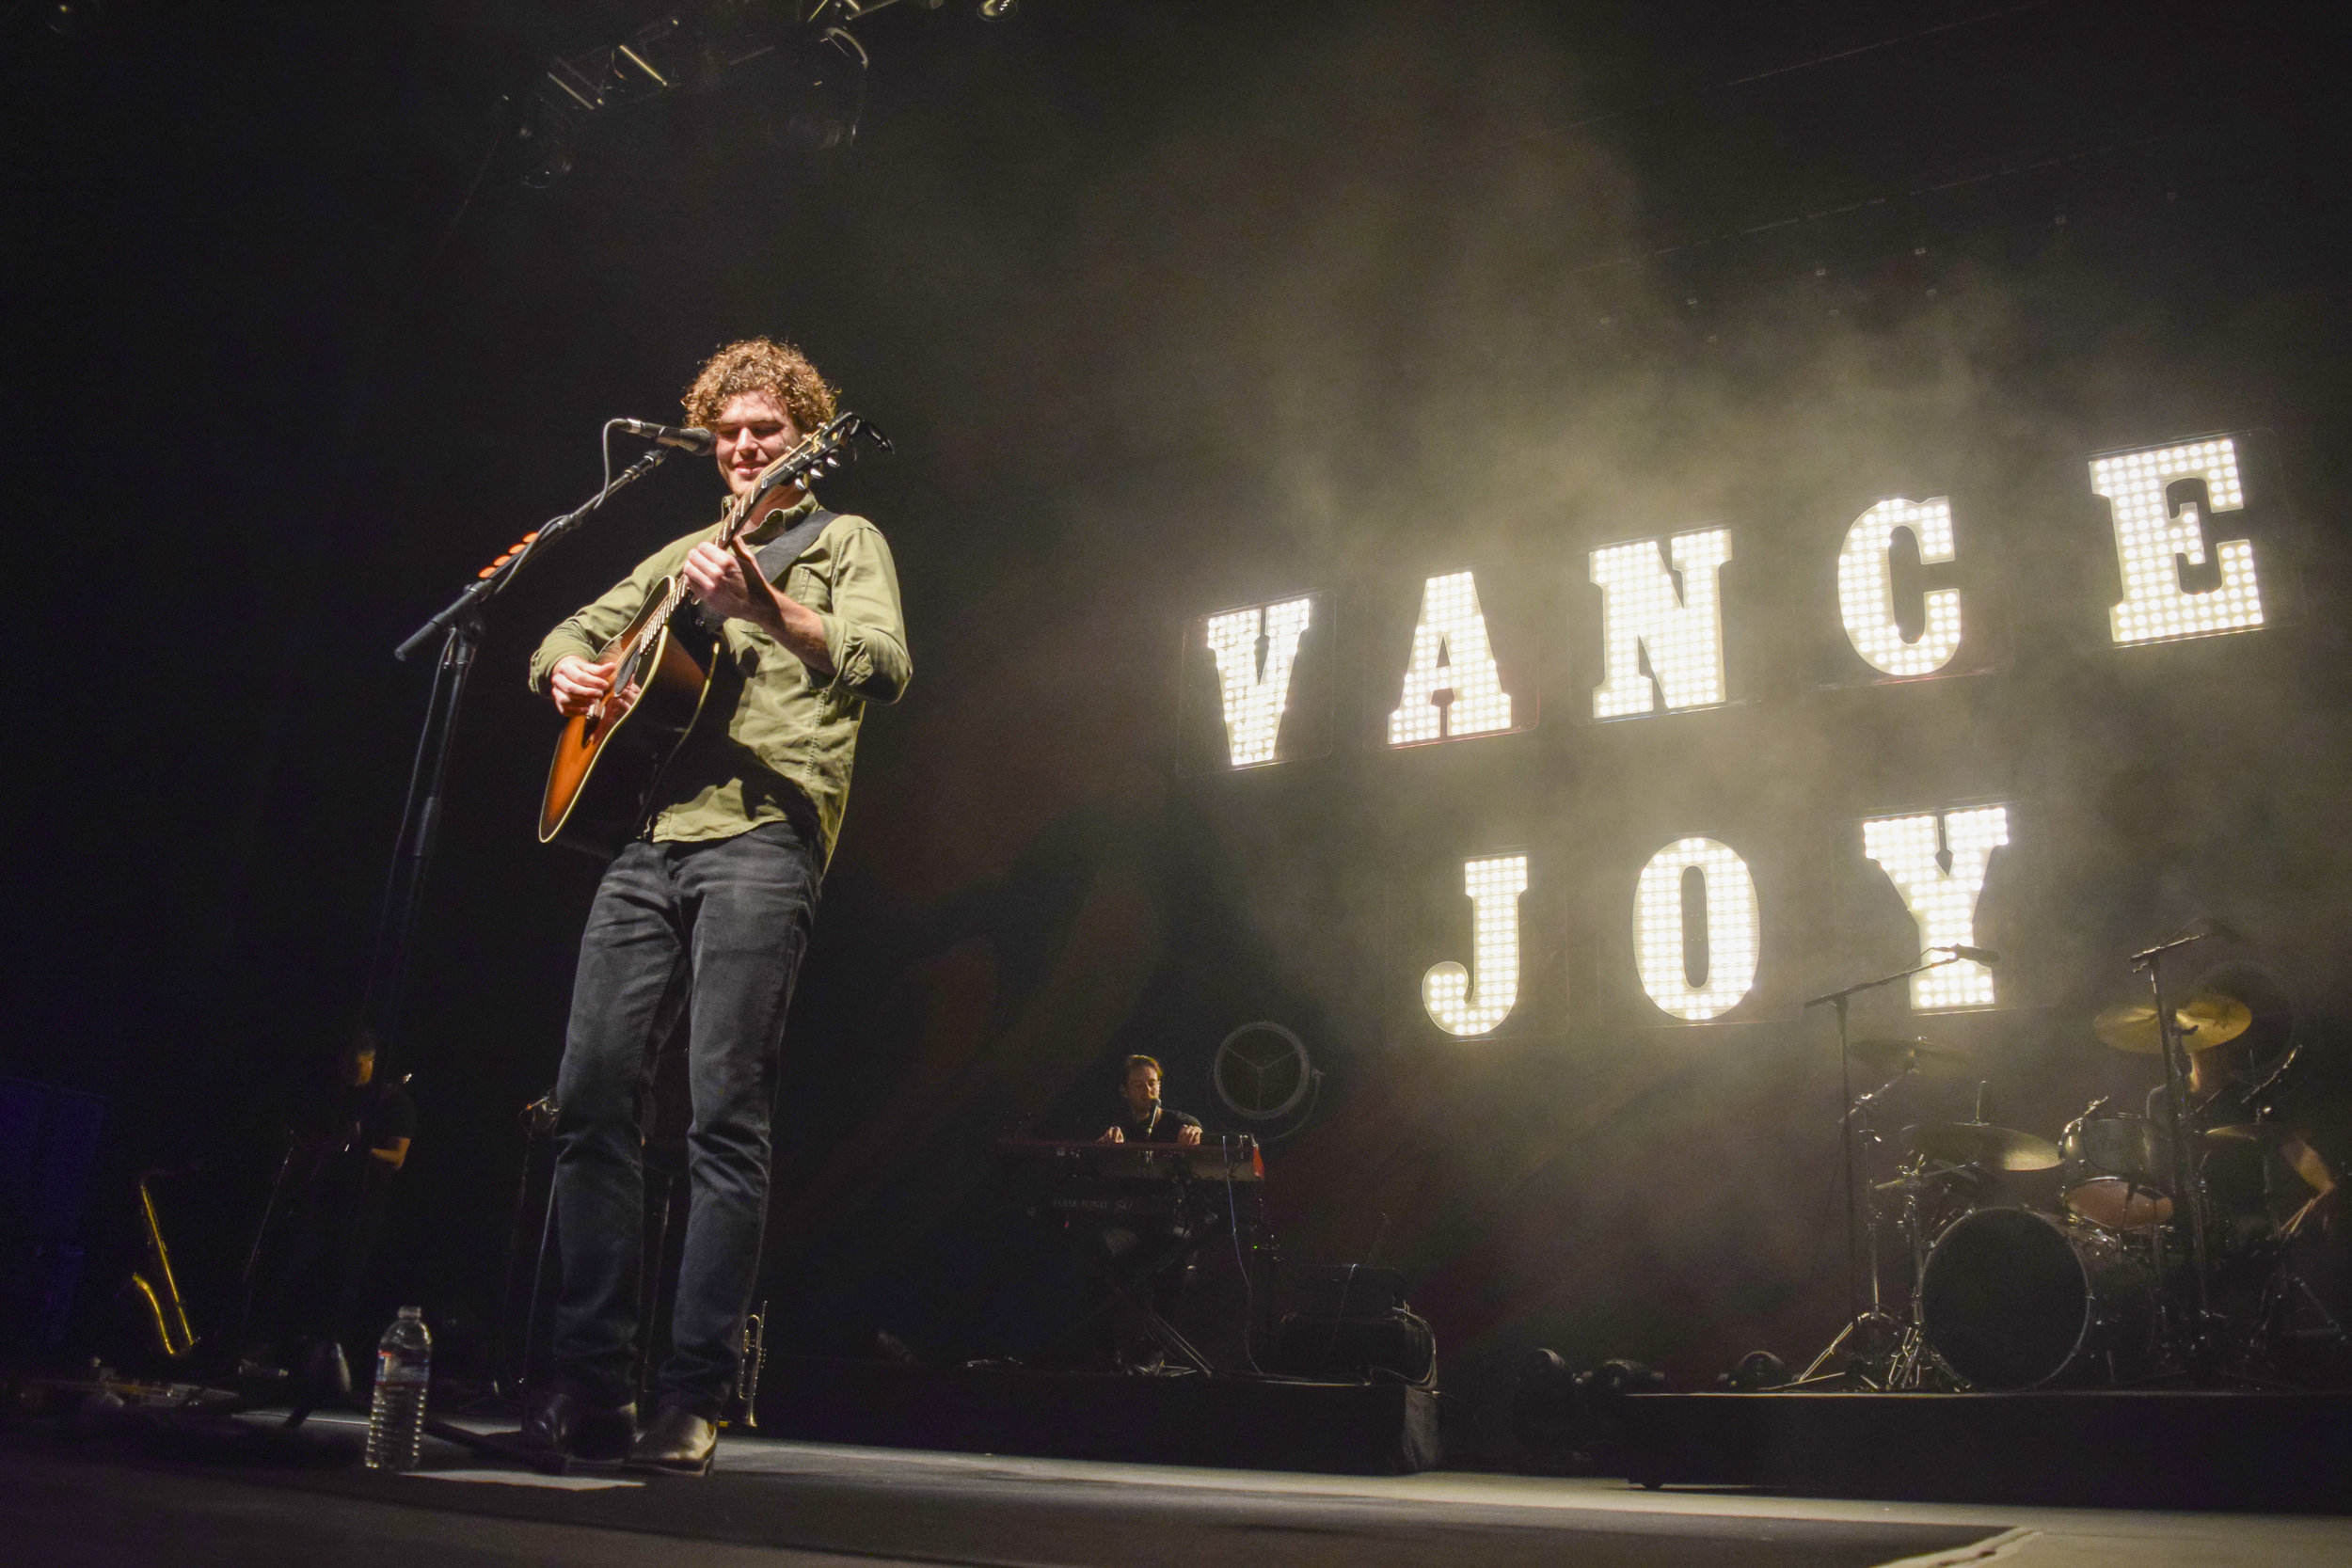 Concert Review: Vance Joy at the Fox Theater